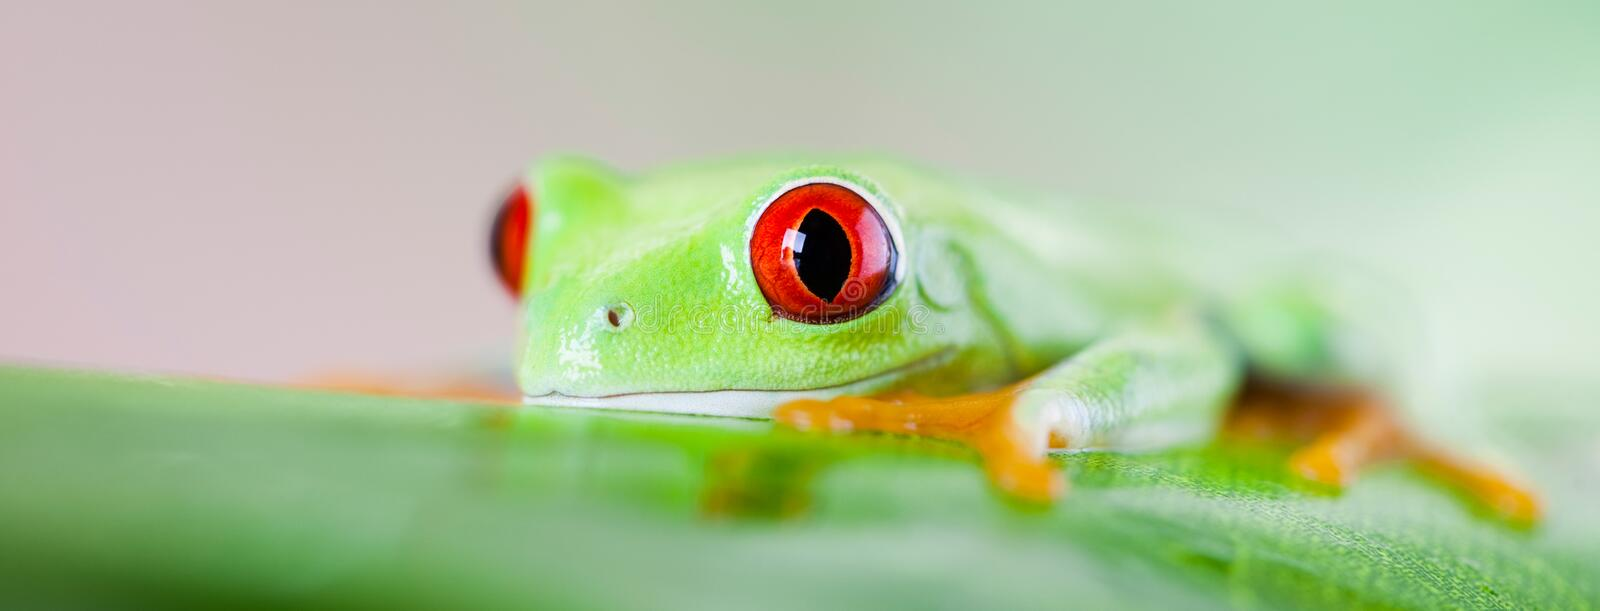 Red eye tree frog on leaf on colorful background.  stock photography